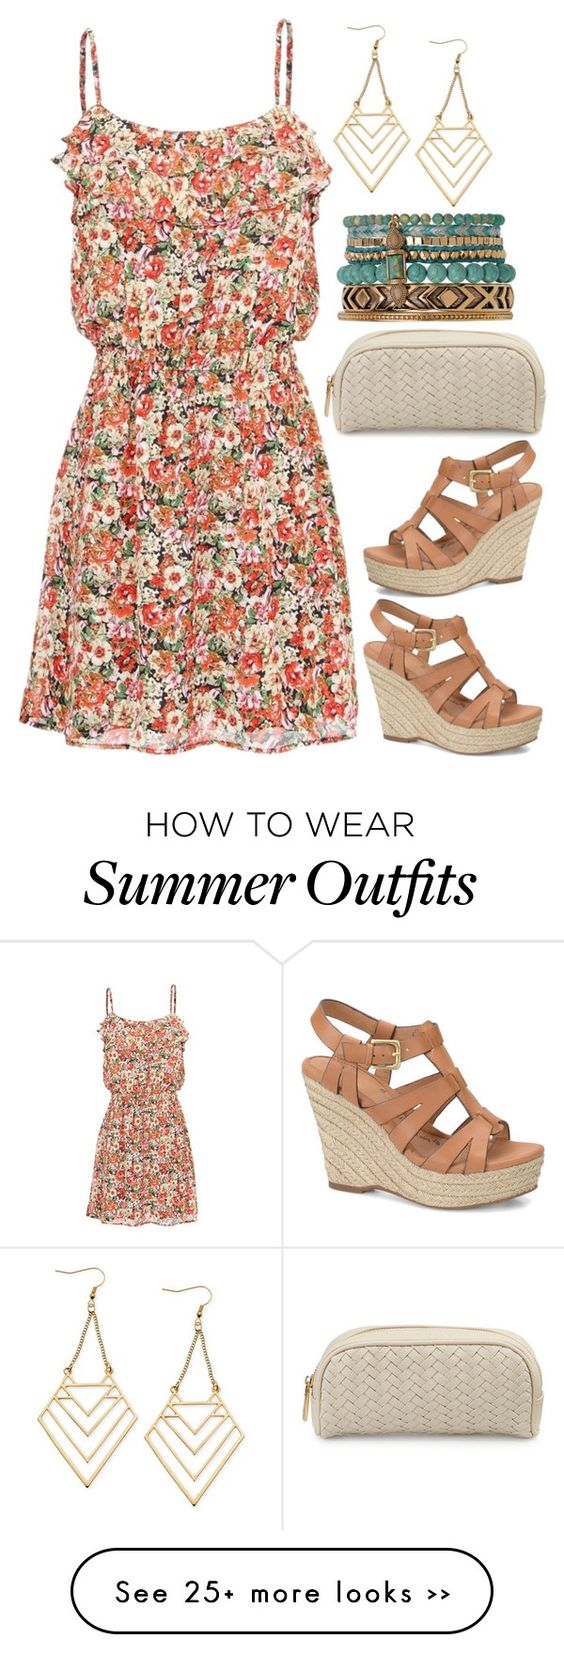 Cool Summer Outfits For Stylish Women